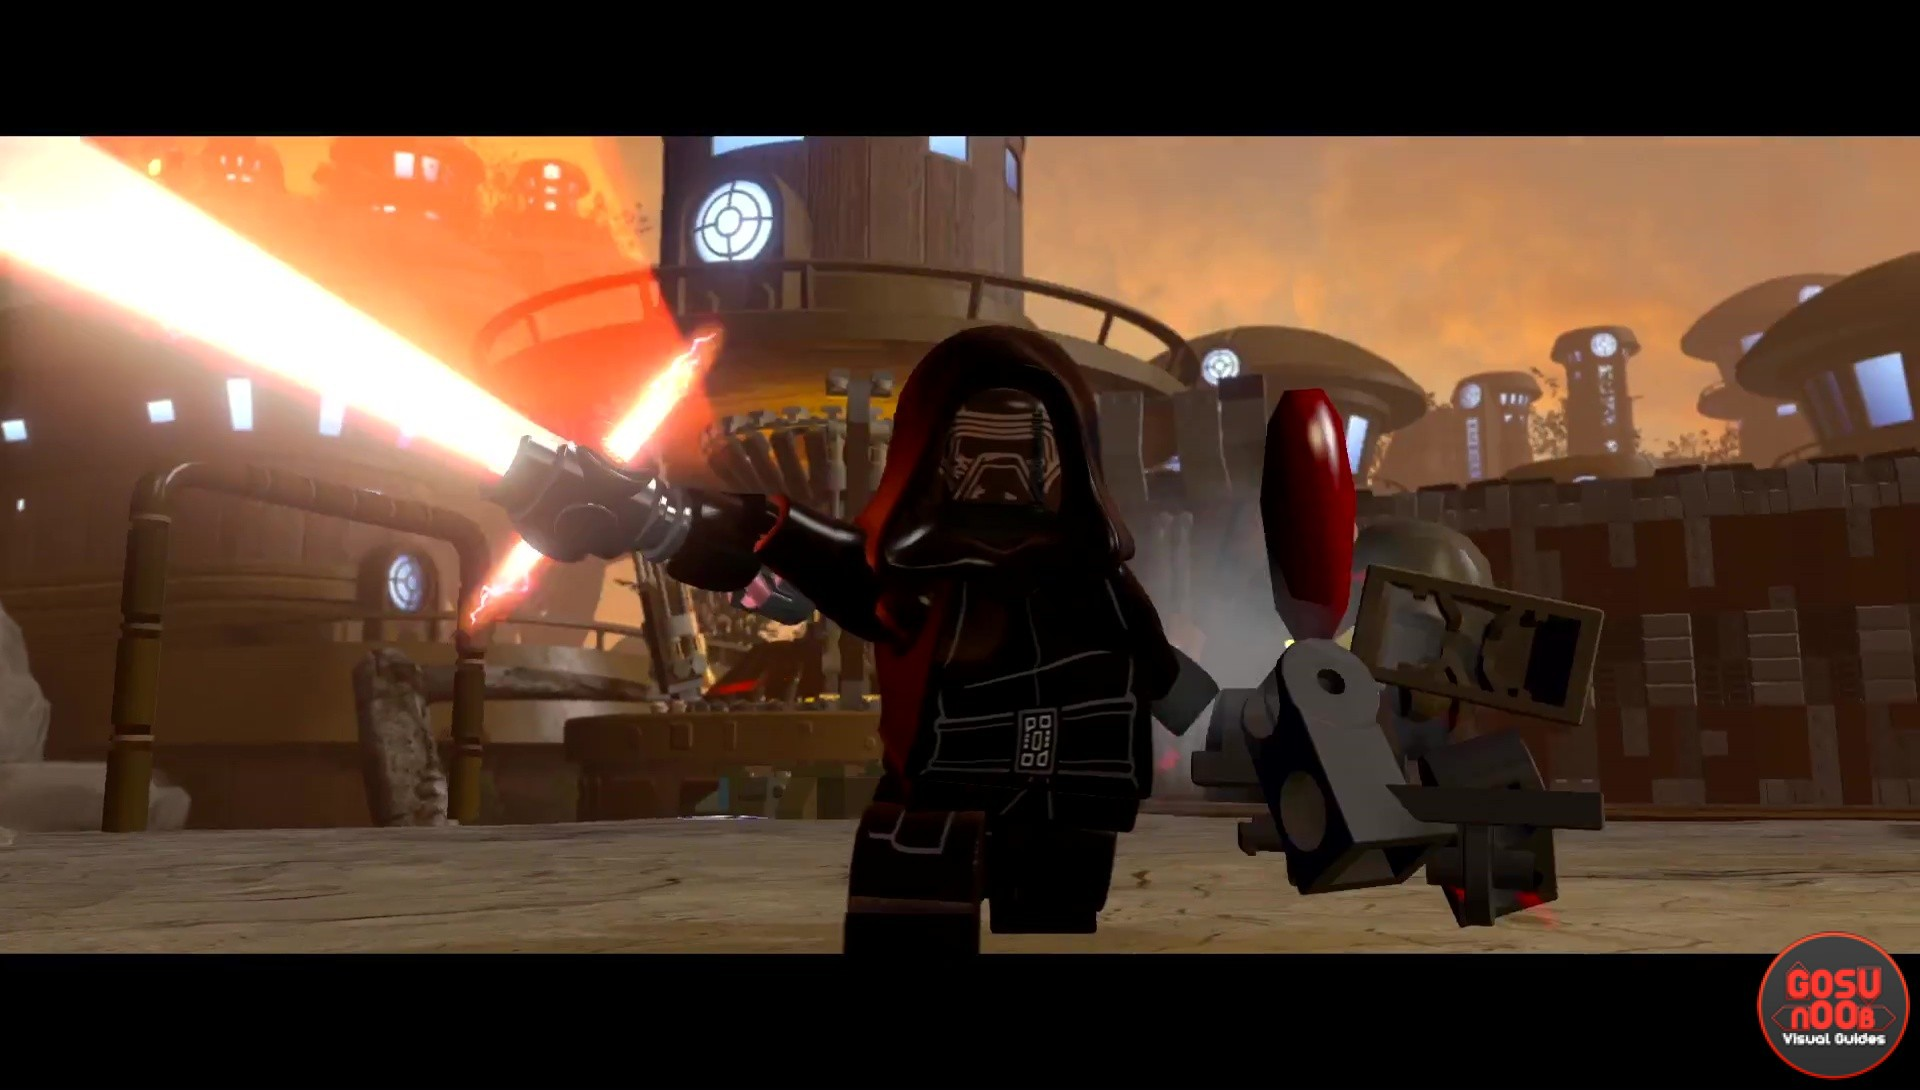 Lego Star Wars The Force Awakens Kylo Ren Spotlight Trailer